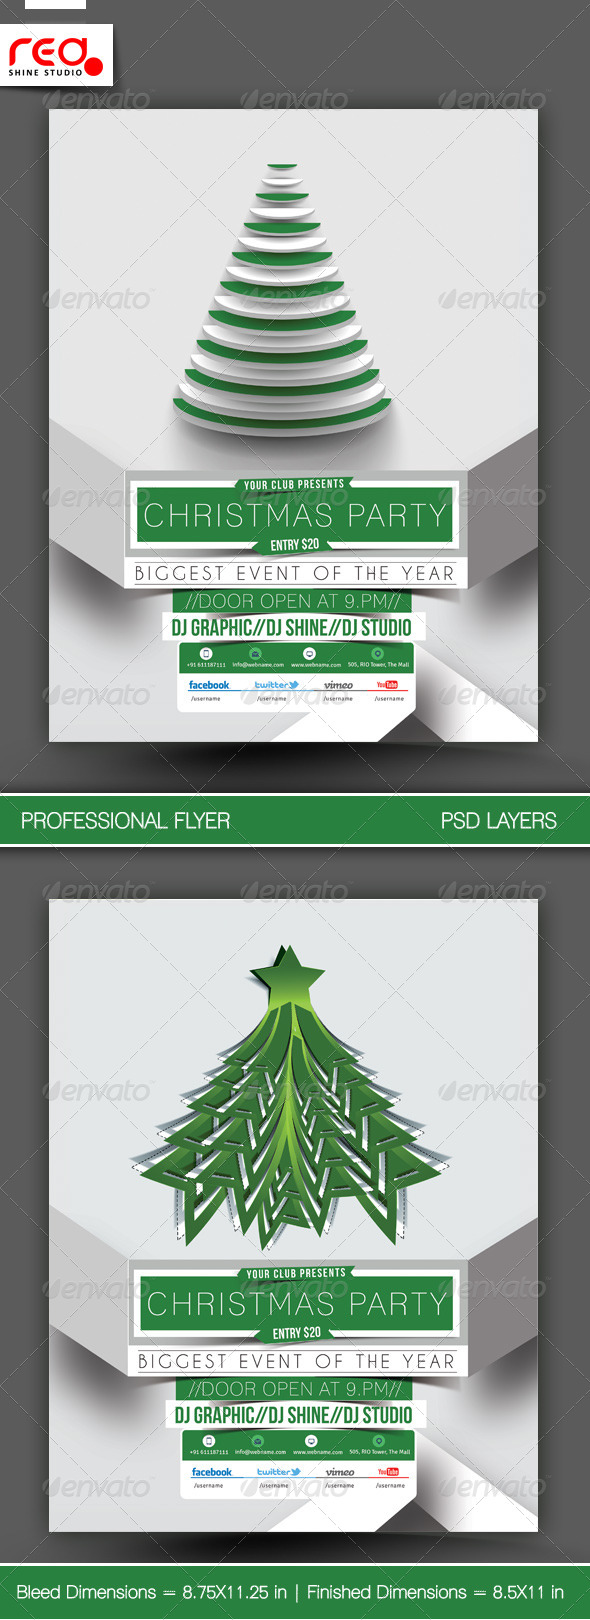 Christmas Party Flyer u0026 Poster Template - 2